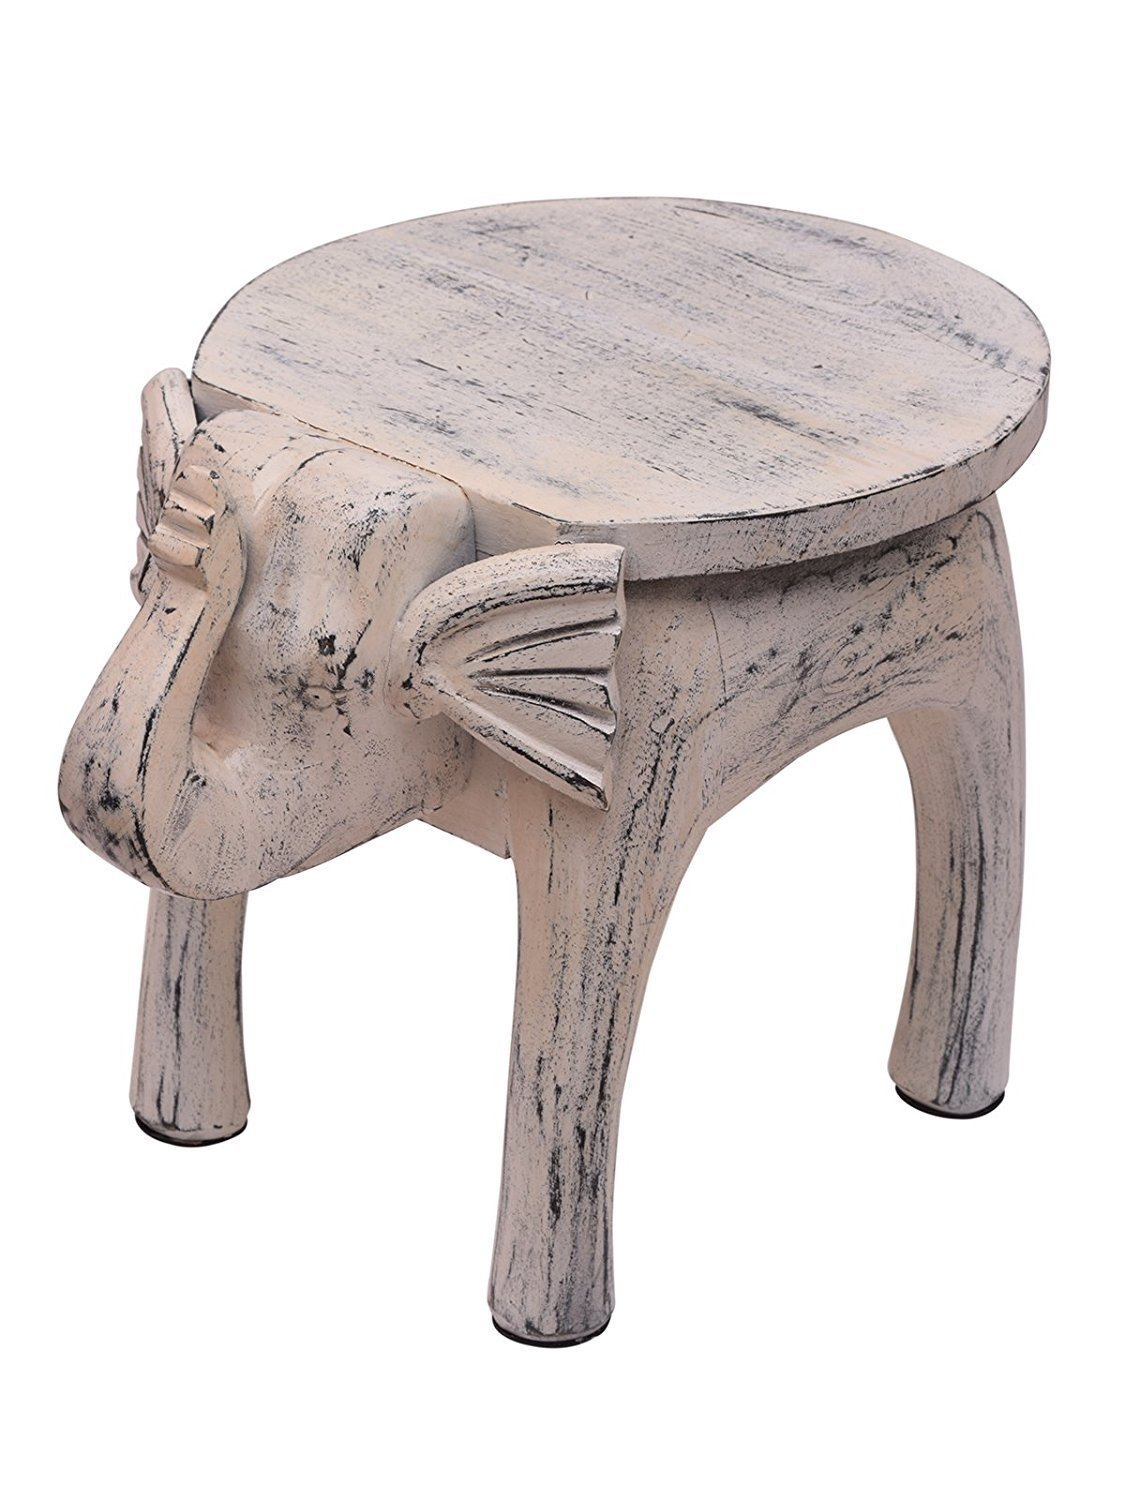 storeindya, Country Style Wooden Round Coffee Table Elephant Shaped Bedside Sofa Side End Table White Distressed Finish Home Kids Room Furniture Shabby Chic Decor - 48.2 X 33 X 36.8 Cm